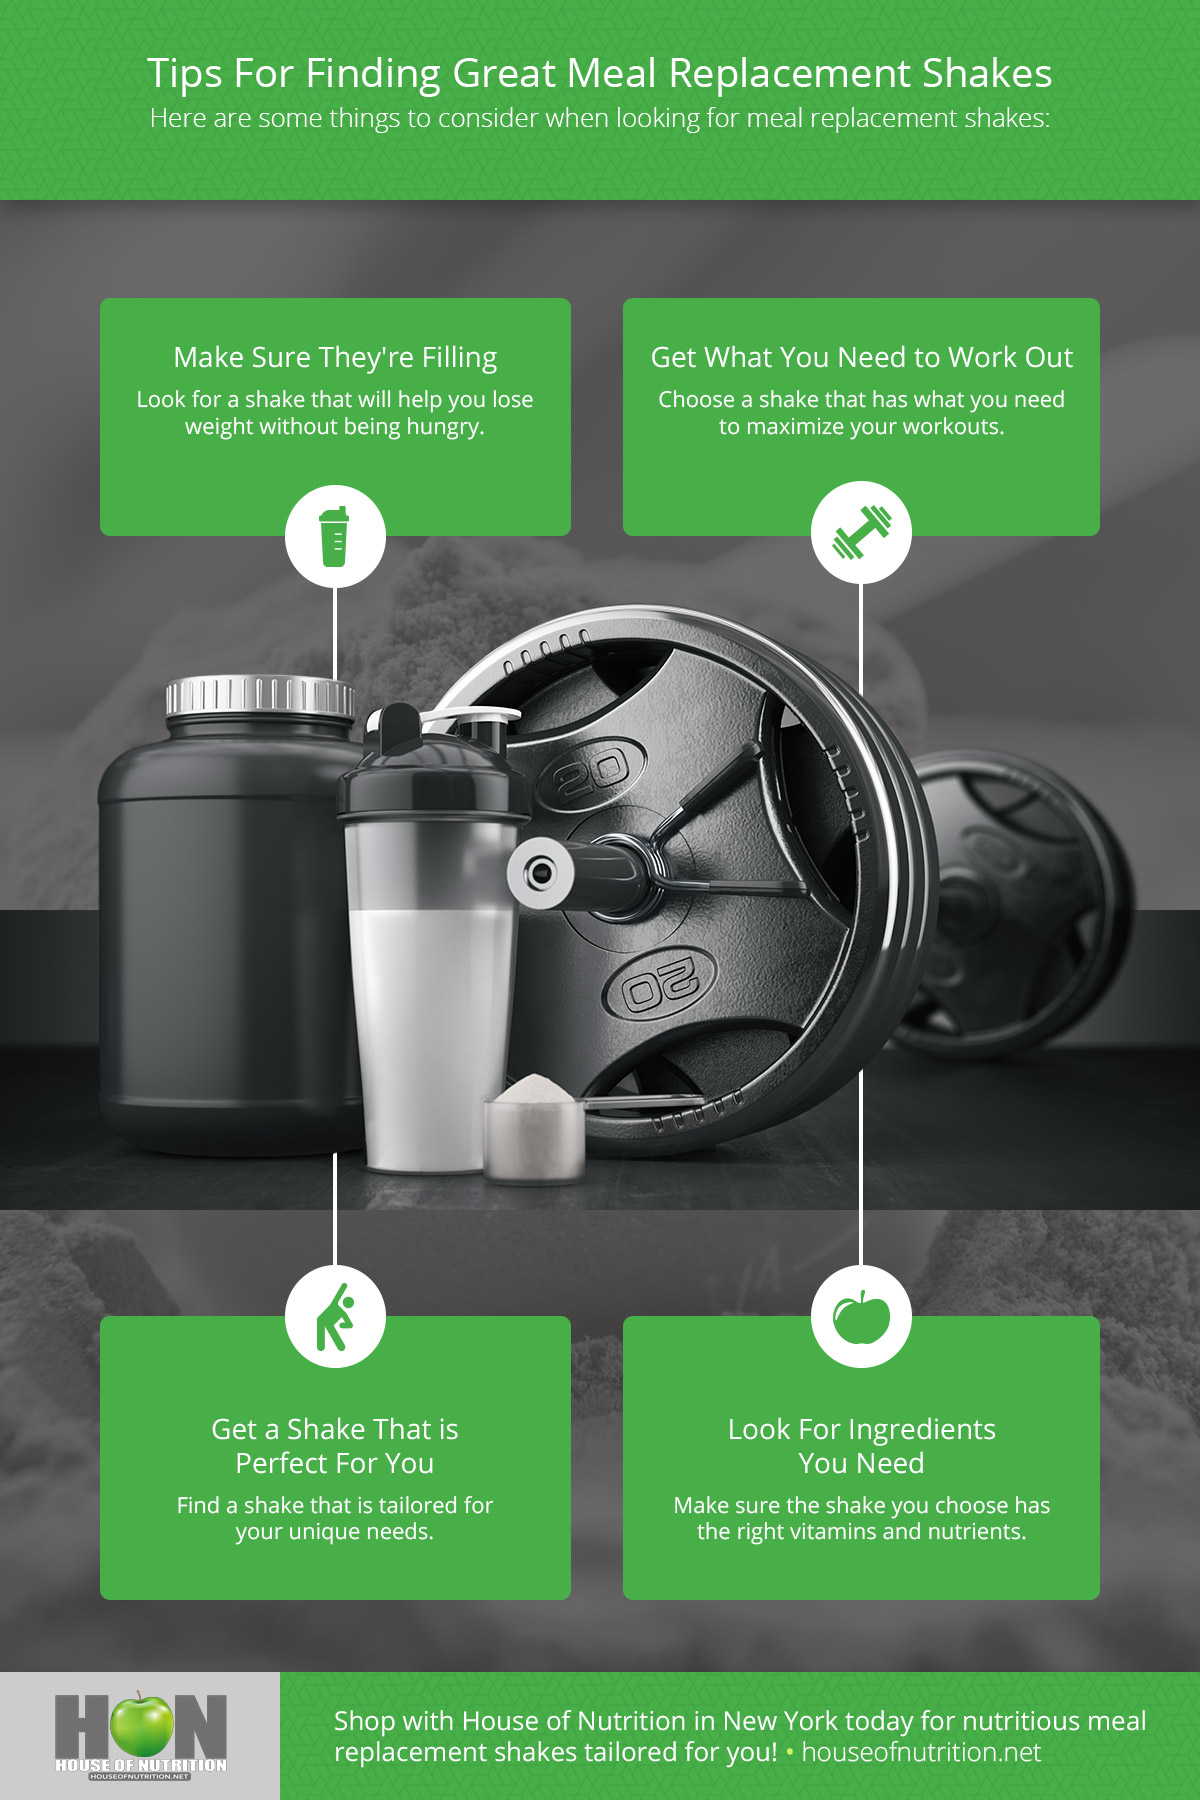 Tips For Finding Great Meal Replacement Shakes Infographic